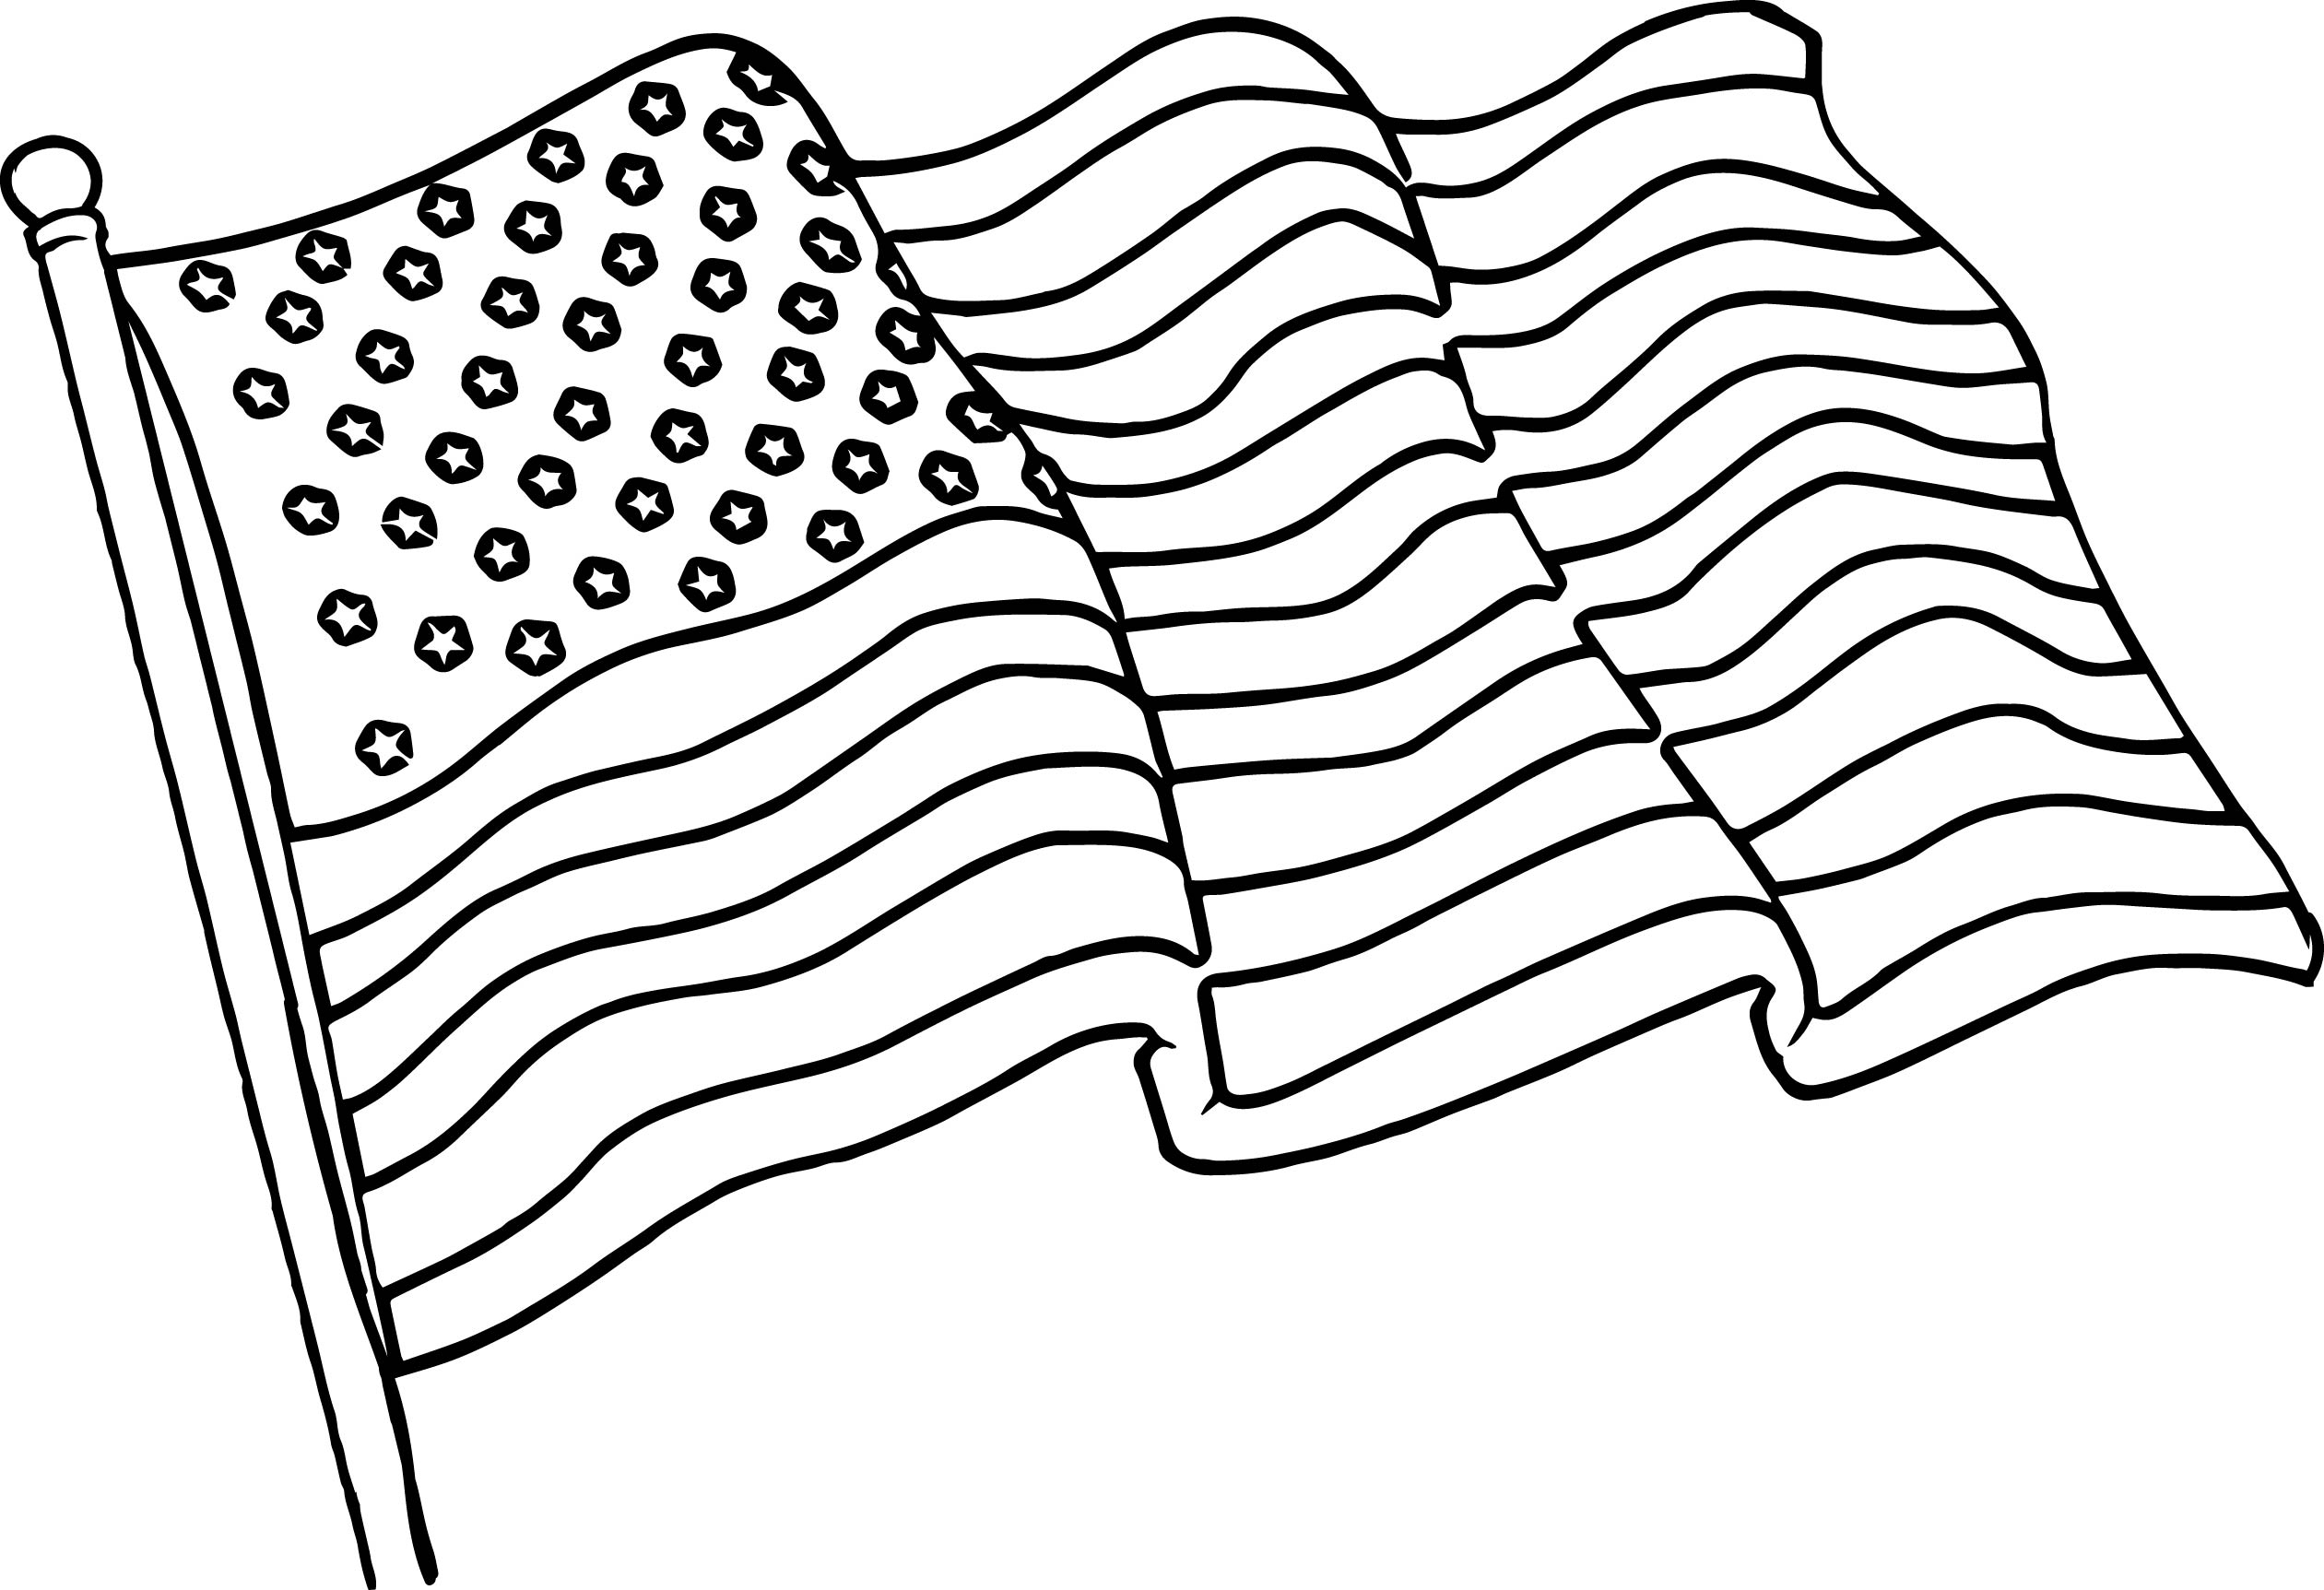 The American Flag Coloring Page American Flag Coloring Pages Best Coloring Pages For Kids